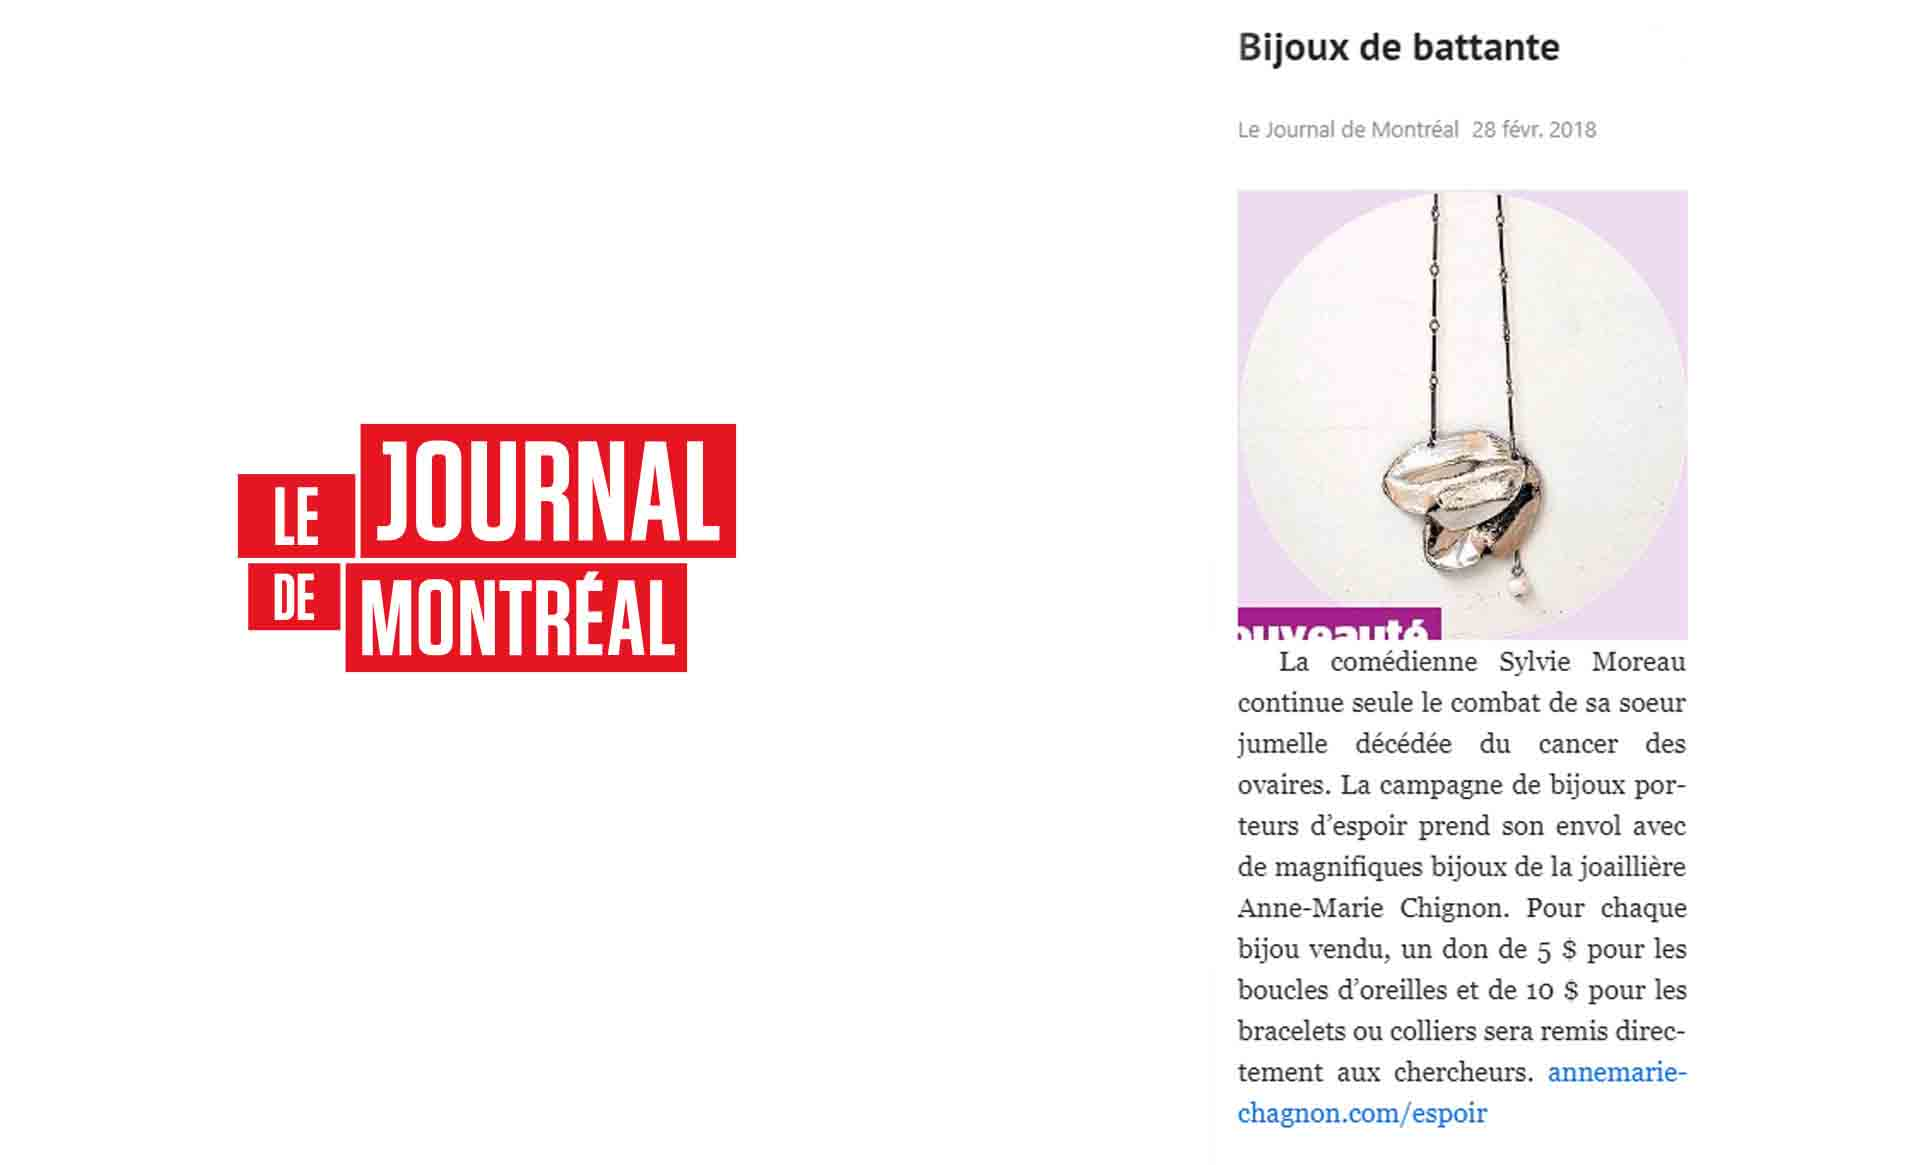 Le Journal de Montréal speaks about the PEARLS OF LIFE collection